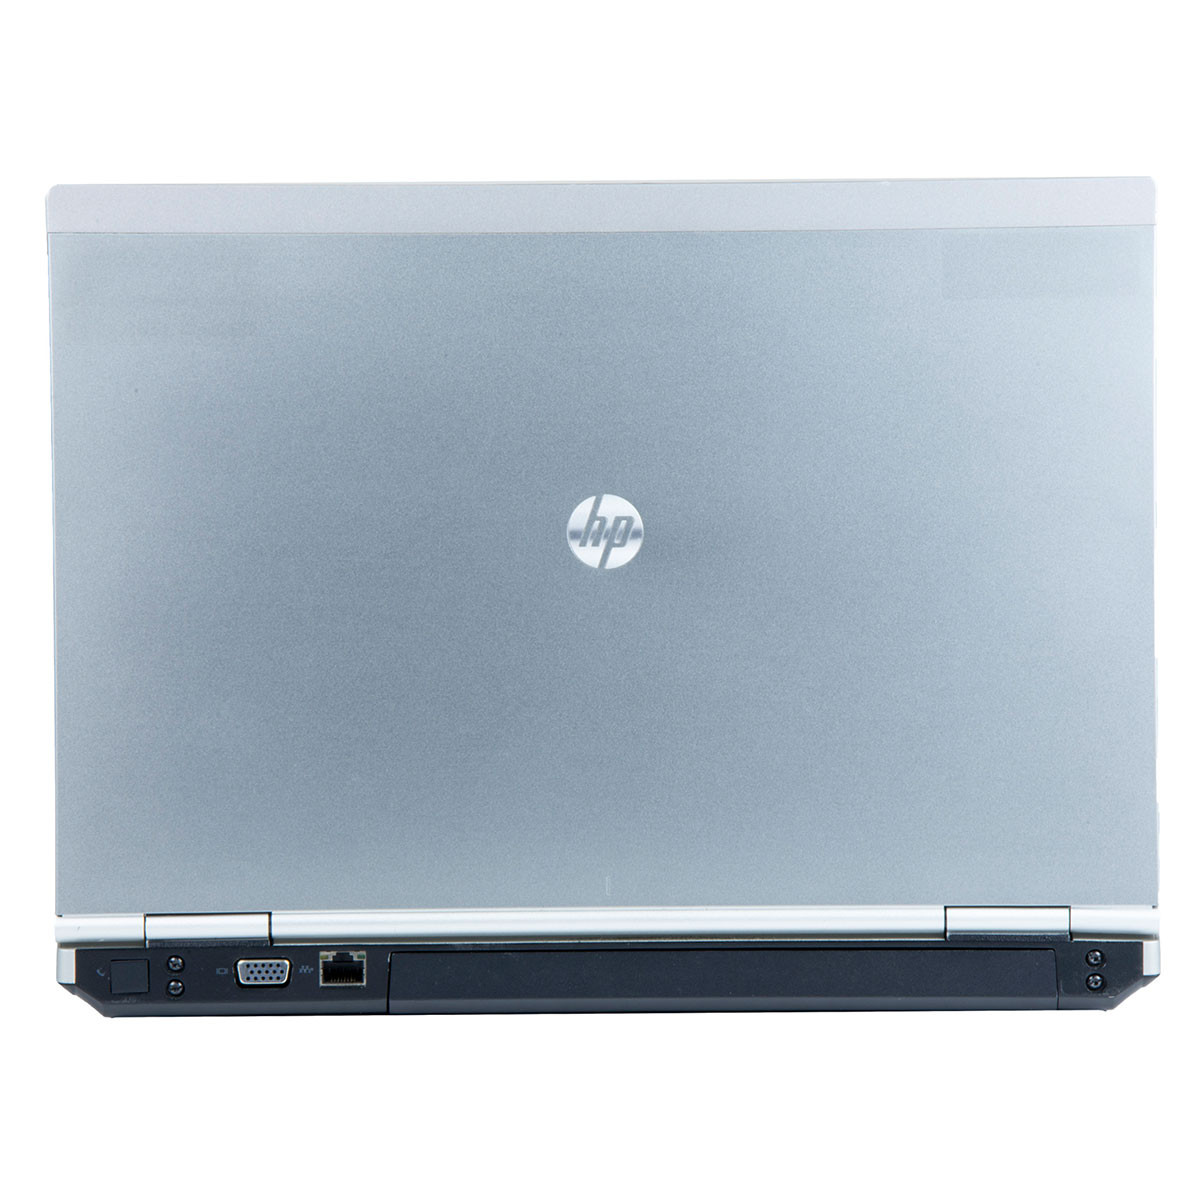 HP Elitebook 8470p 14 inch LED, Intel Core i5-3360M 2 80 GHz, 8 GB DDR 3,  256 GB SSD, DVD-RW, Webcam